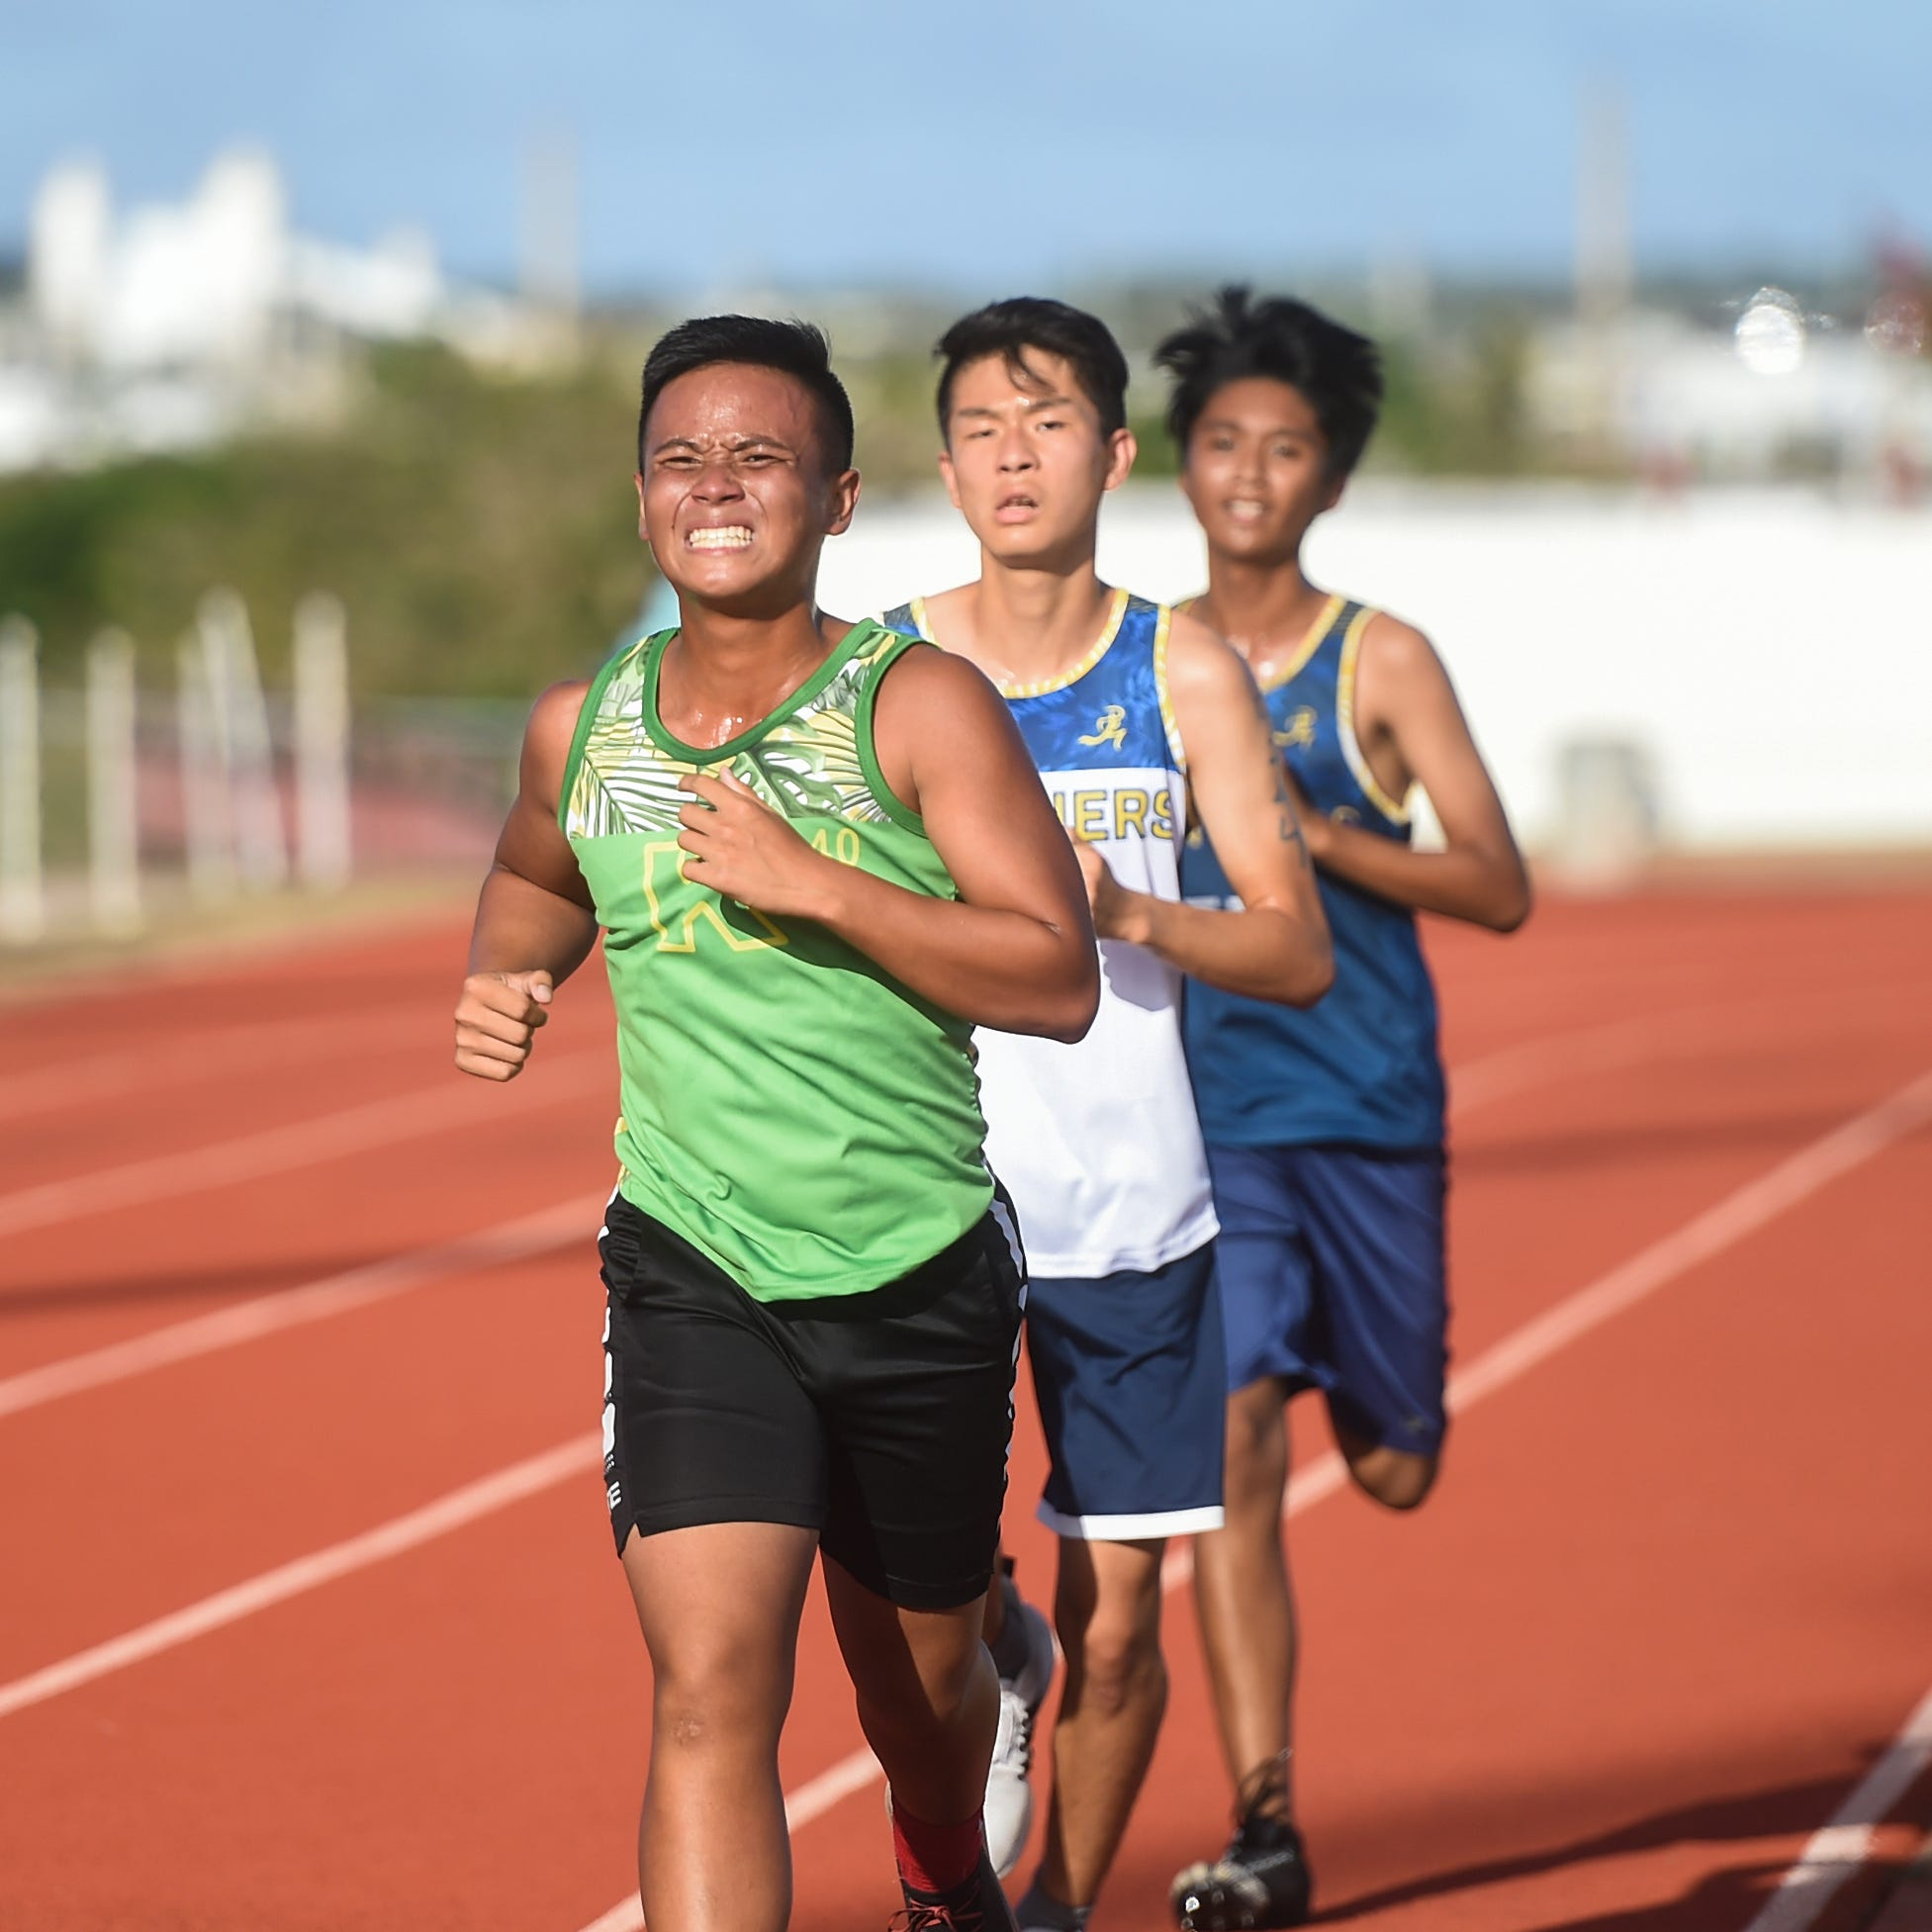 Guam Department of Education will retake control of interscholastic sports